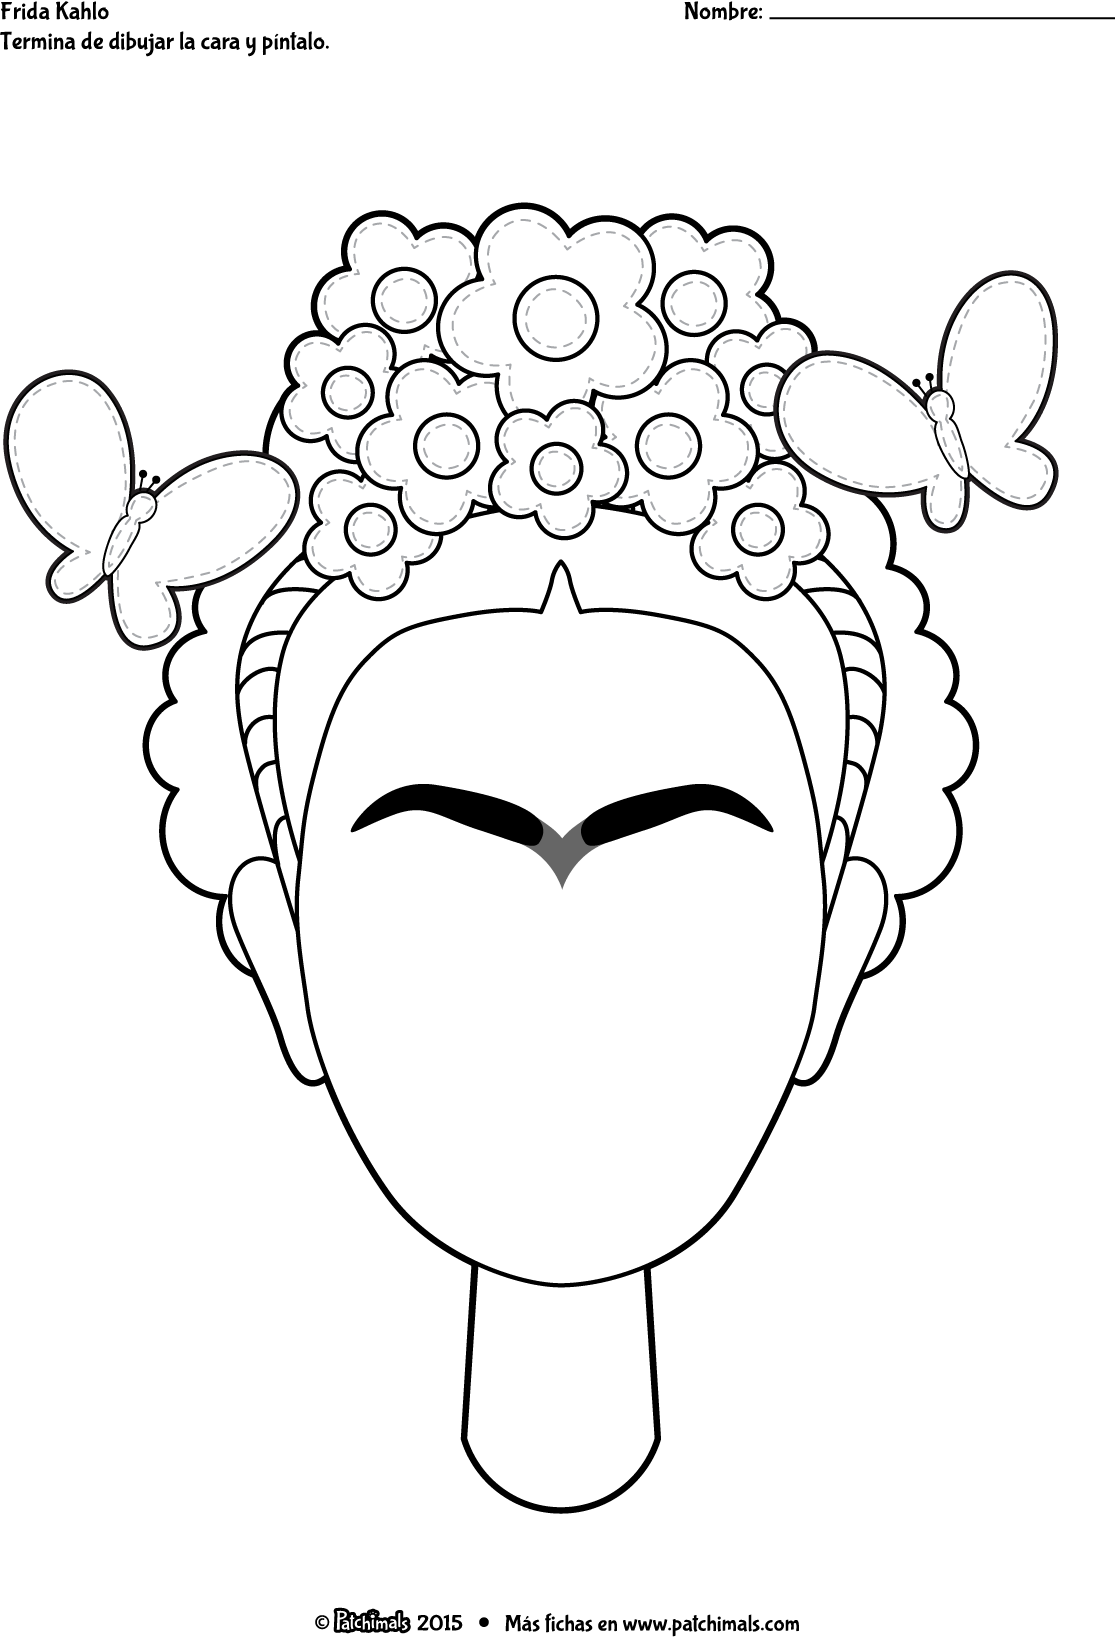 Worksheets Frida Kahlo Worksheets patchimals educational and cultural contents for children apps frida kahlo autorretrato